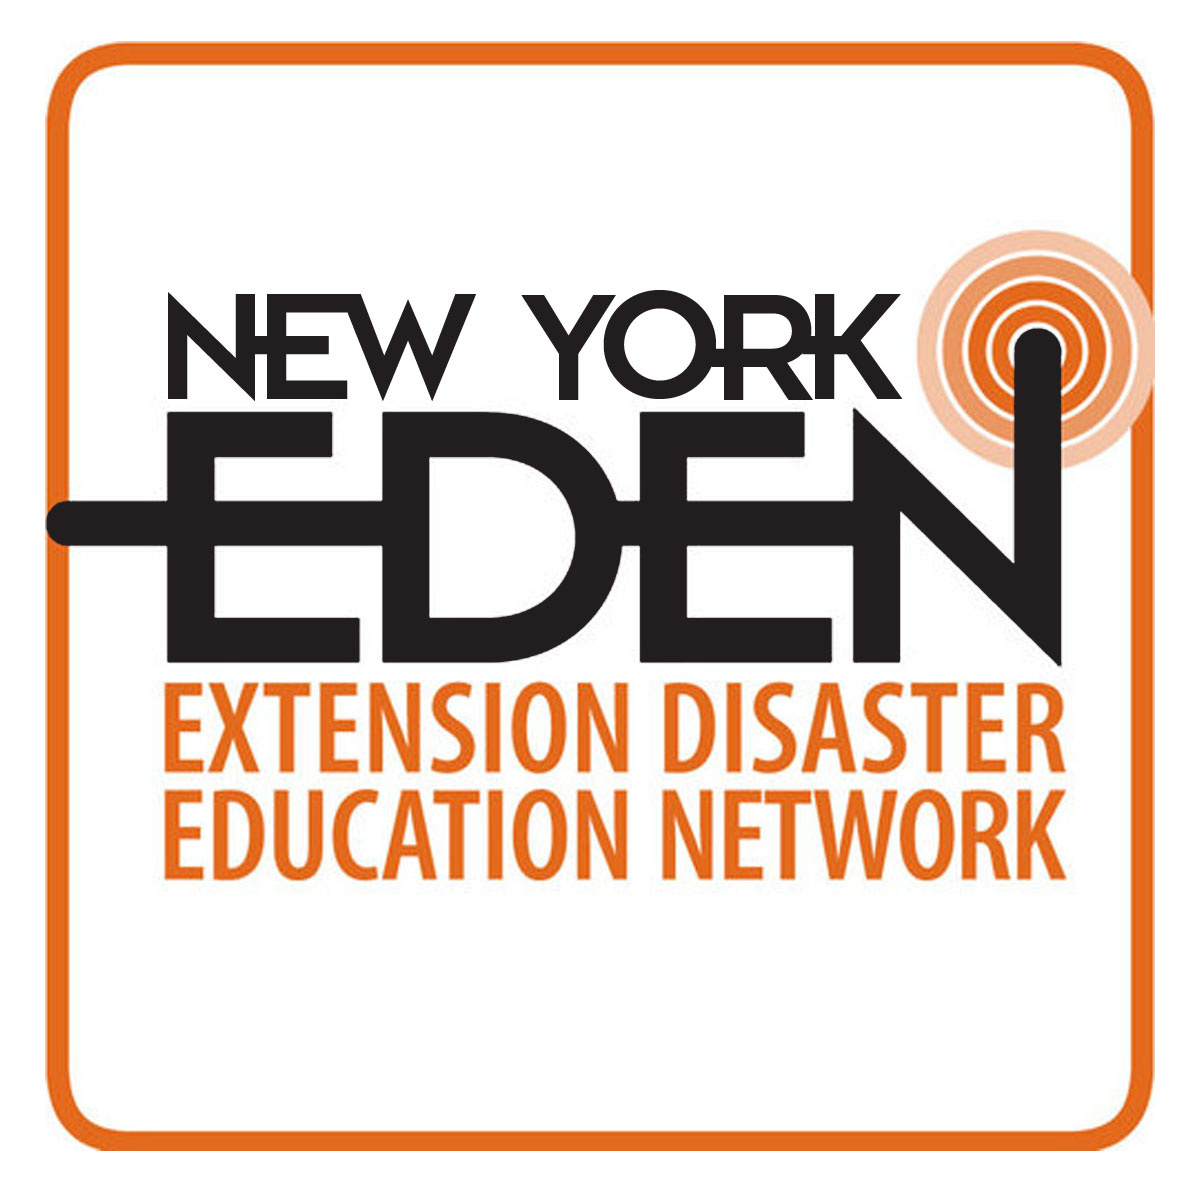 NY Extension Disaster Education Network (EDEN):